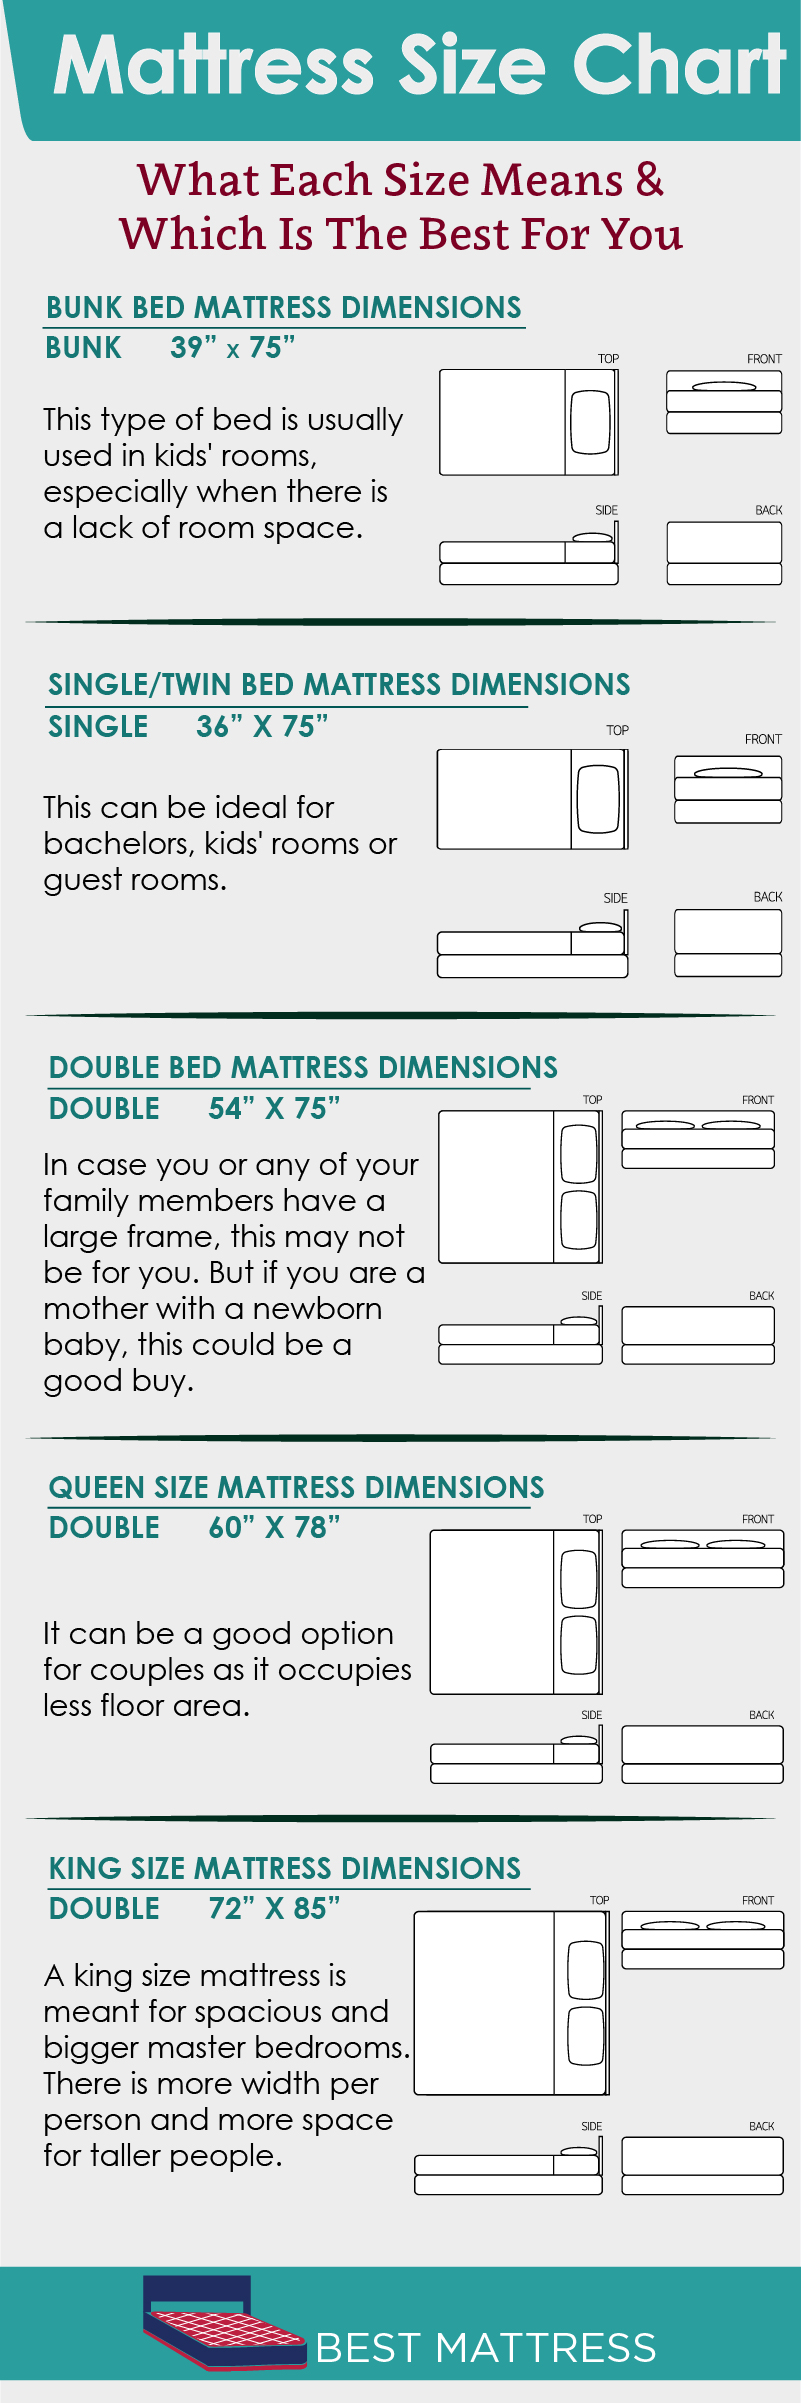 Mattress Size Chart Single Double King Or Queen What Do They Really Mean